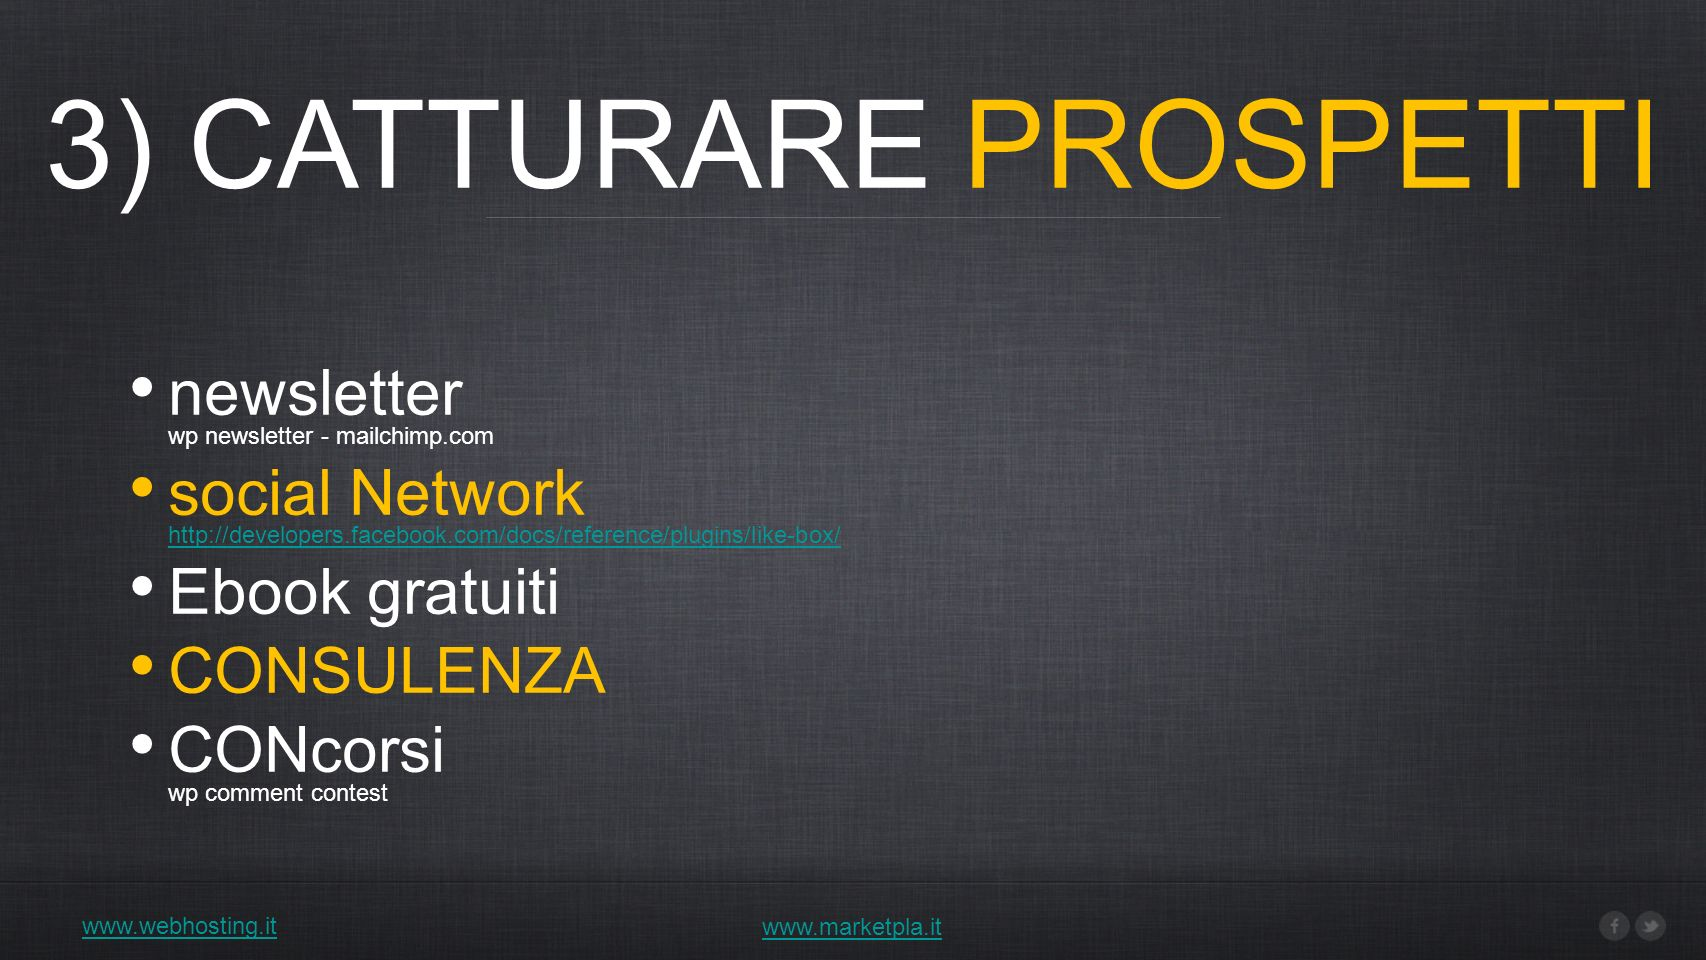 3) CATTURARE PROSPETTI www.webhosting.it www.marketpla.it newsletter wp newsletter - mailchimp.com social Network http://developers.facebook.com/docs/reference/plugins/like-box/ http://developers.facebook.com/docs/reference/plugins/like-box/ Ebook gratuiti CONSULENZA CONcorsi wp comment contest